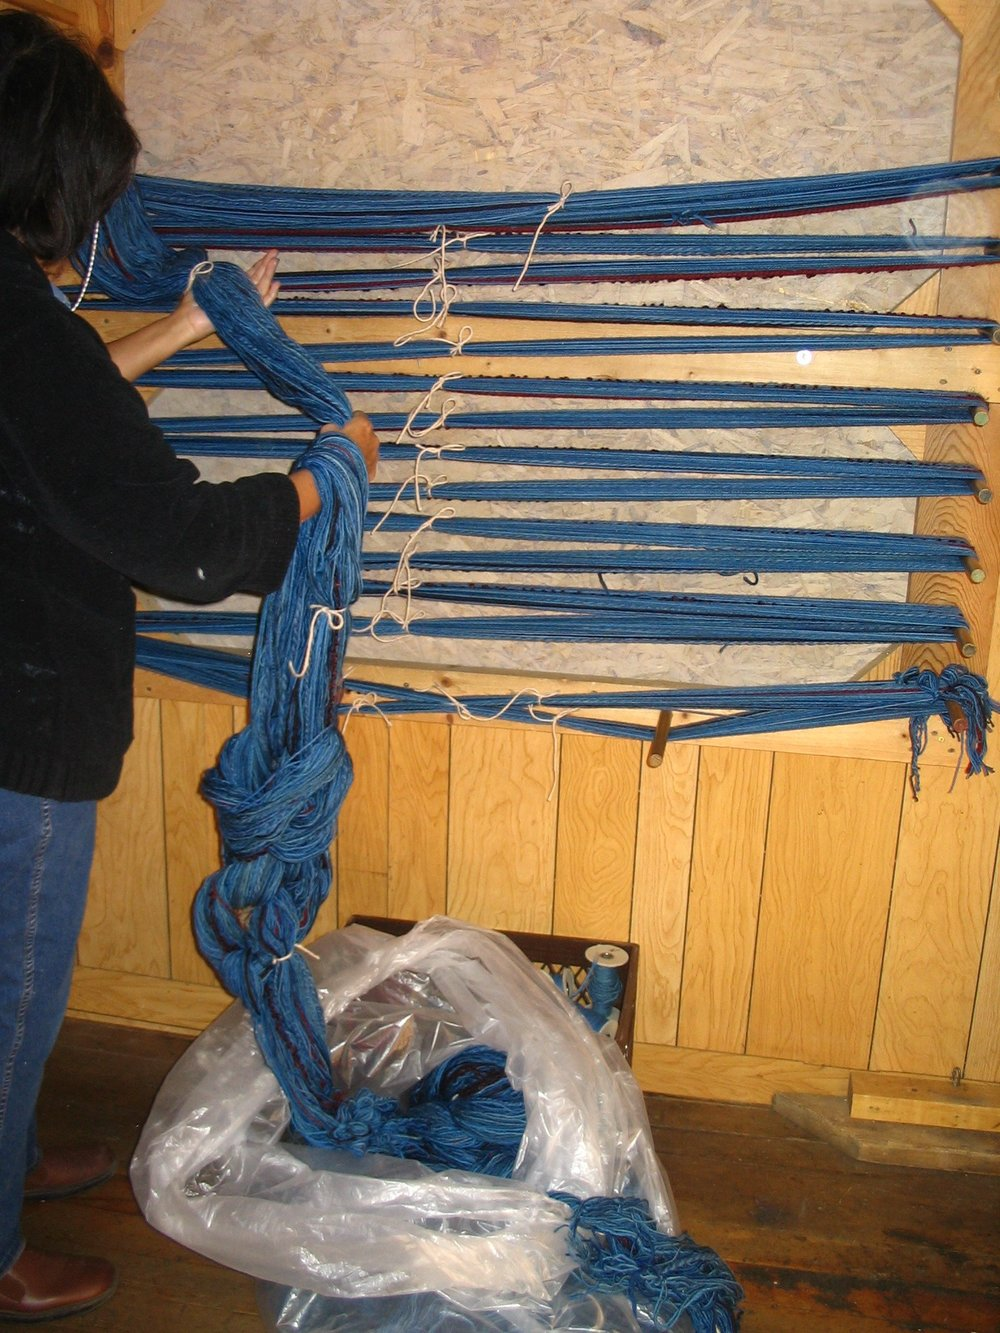 Winding a new warp to put on the loom